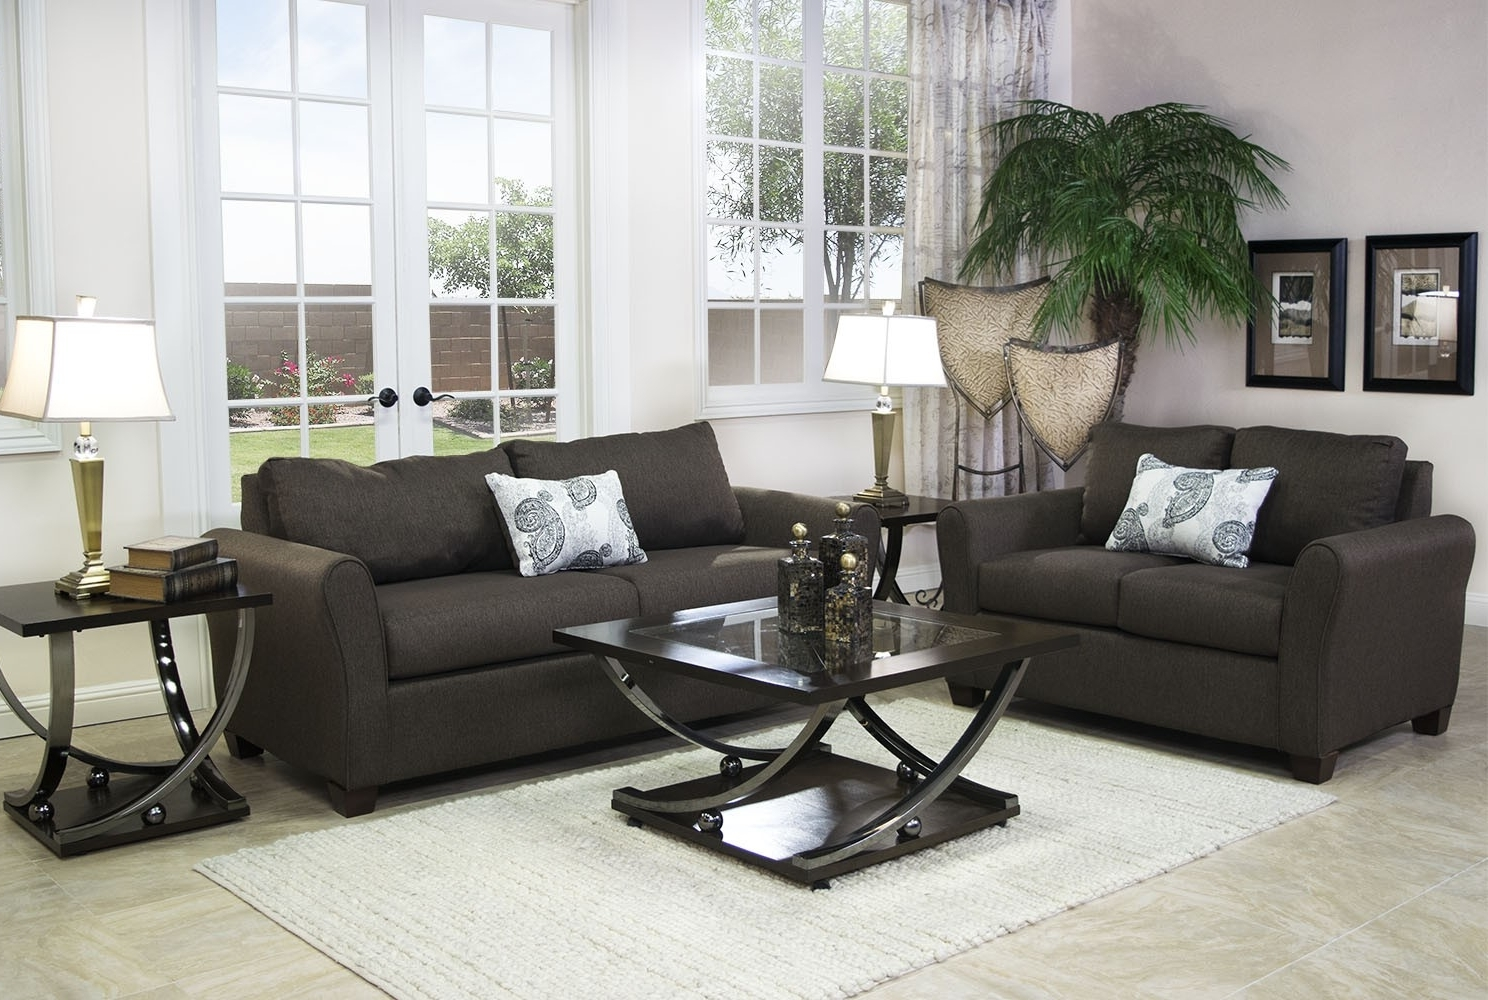 mor furniture living room sets 03